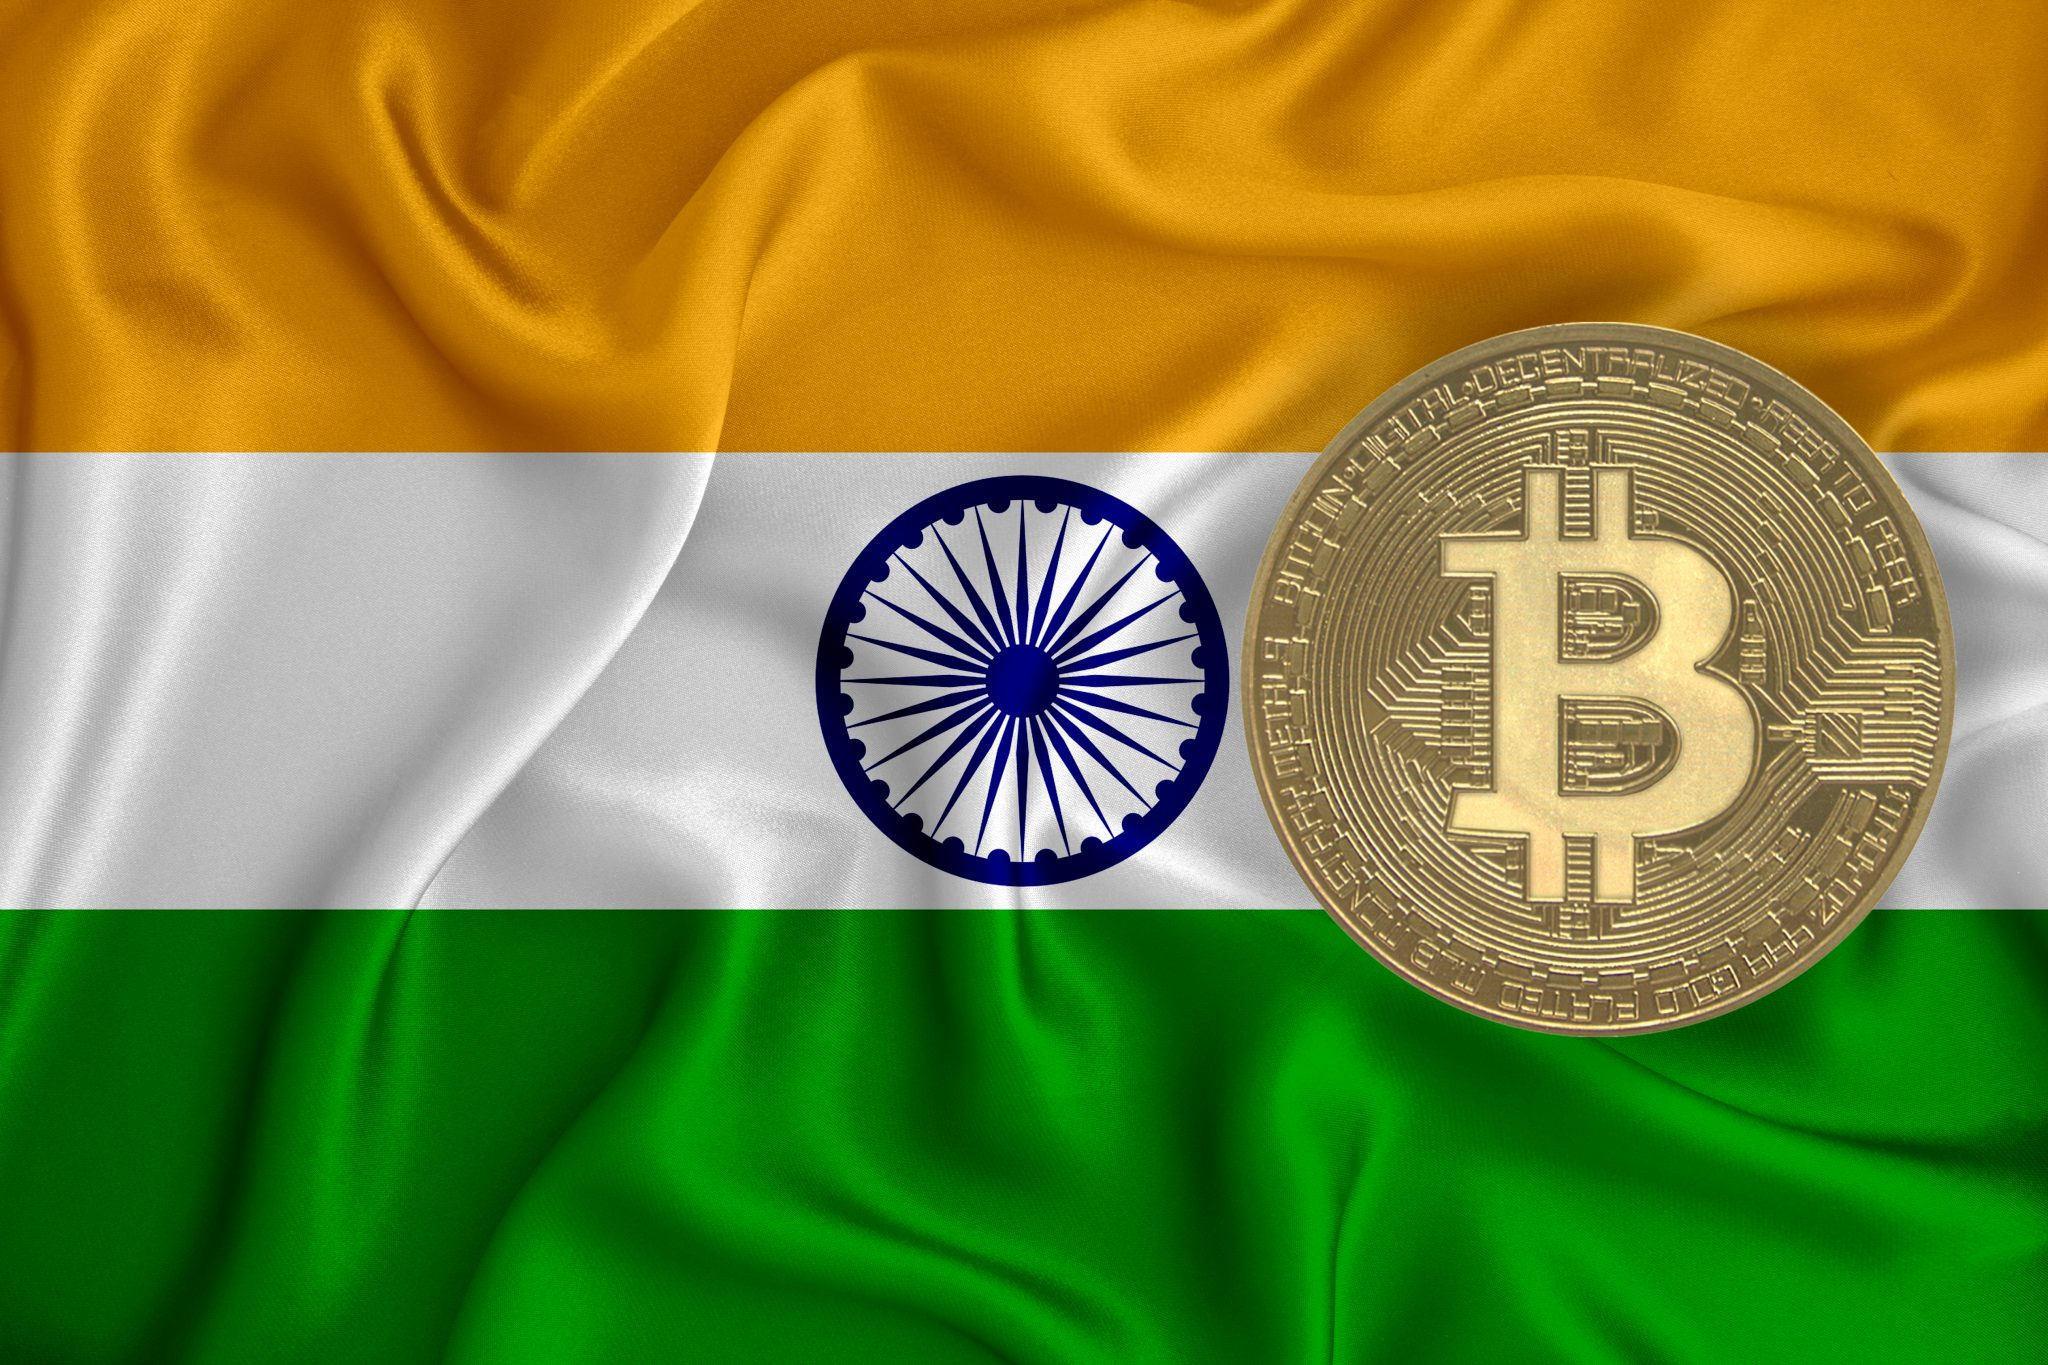 flag, bitcoin gold coin on flag background. The concept of blockchain, bitcoin, currency decentralization in the country. 3d-rendering